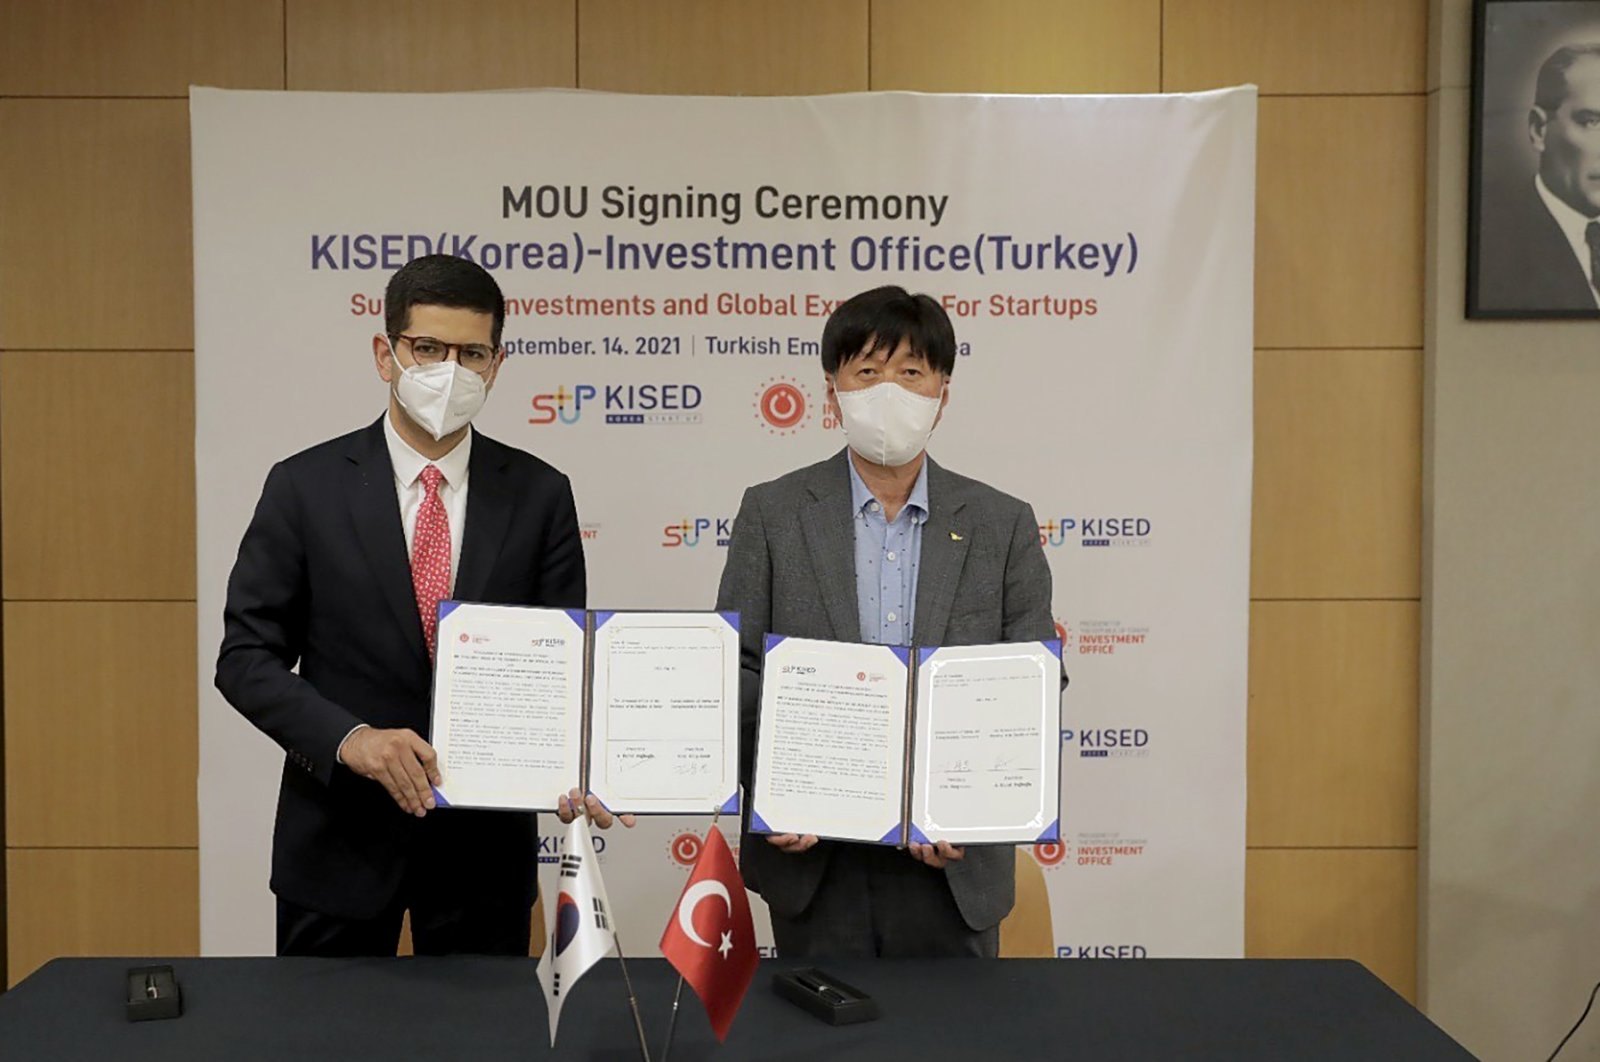 Turkish Presidency's Investment Office head Ahmet Burak Dağlıoğlu (L) and Chairperson of the Korean Institute of Startup & Entrepreneurship Development Kim Yong-moon during the signing ceremony of MoU, Seoul, South Korea, Sept. 15, 2021. (Photo courtesy of Investment Office )